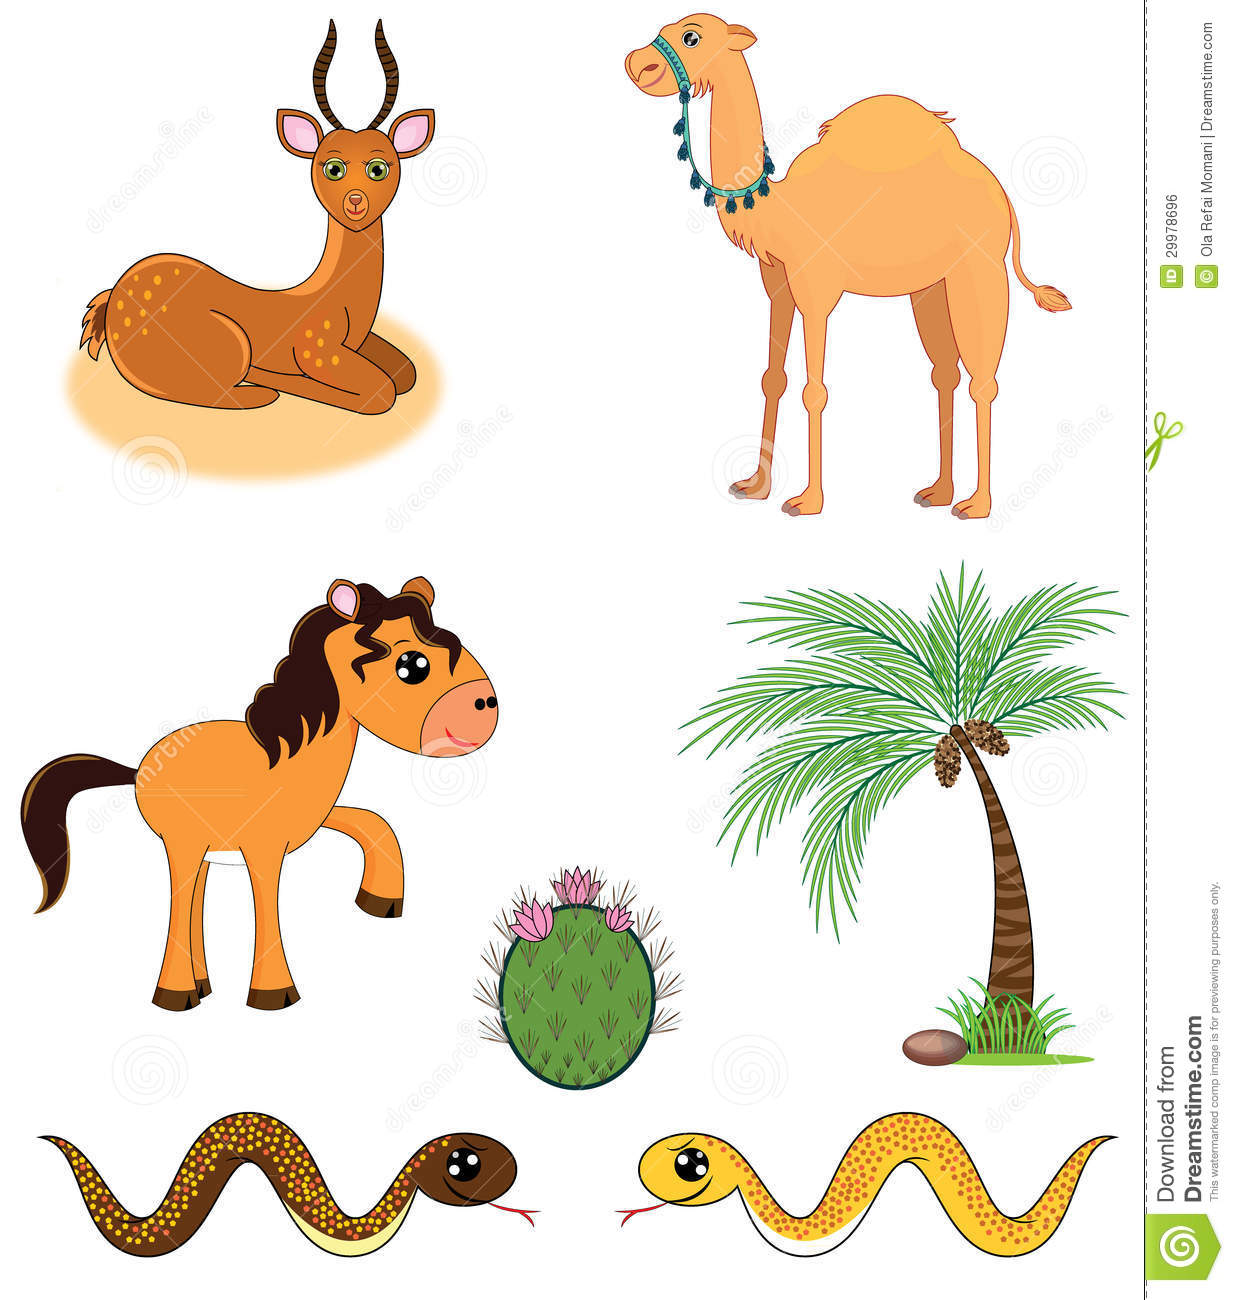 Desert animal clipart 20 free Cliparts | Download images ...